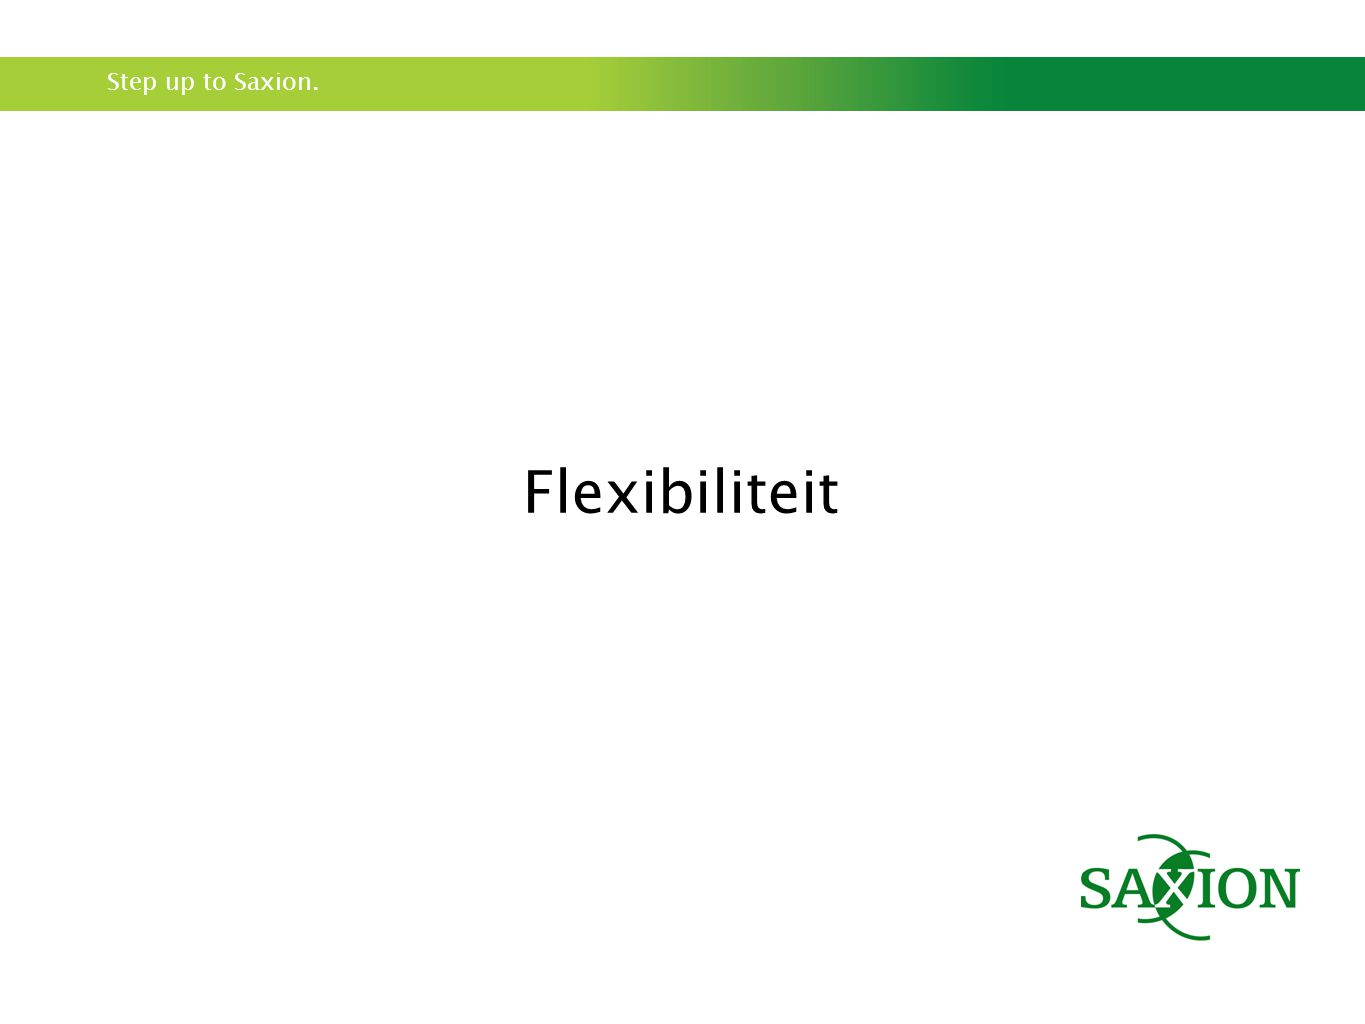 Step up to Saxion. Flexibiliteit